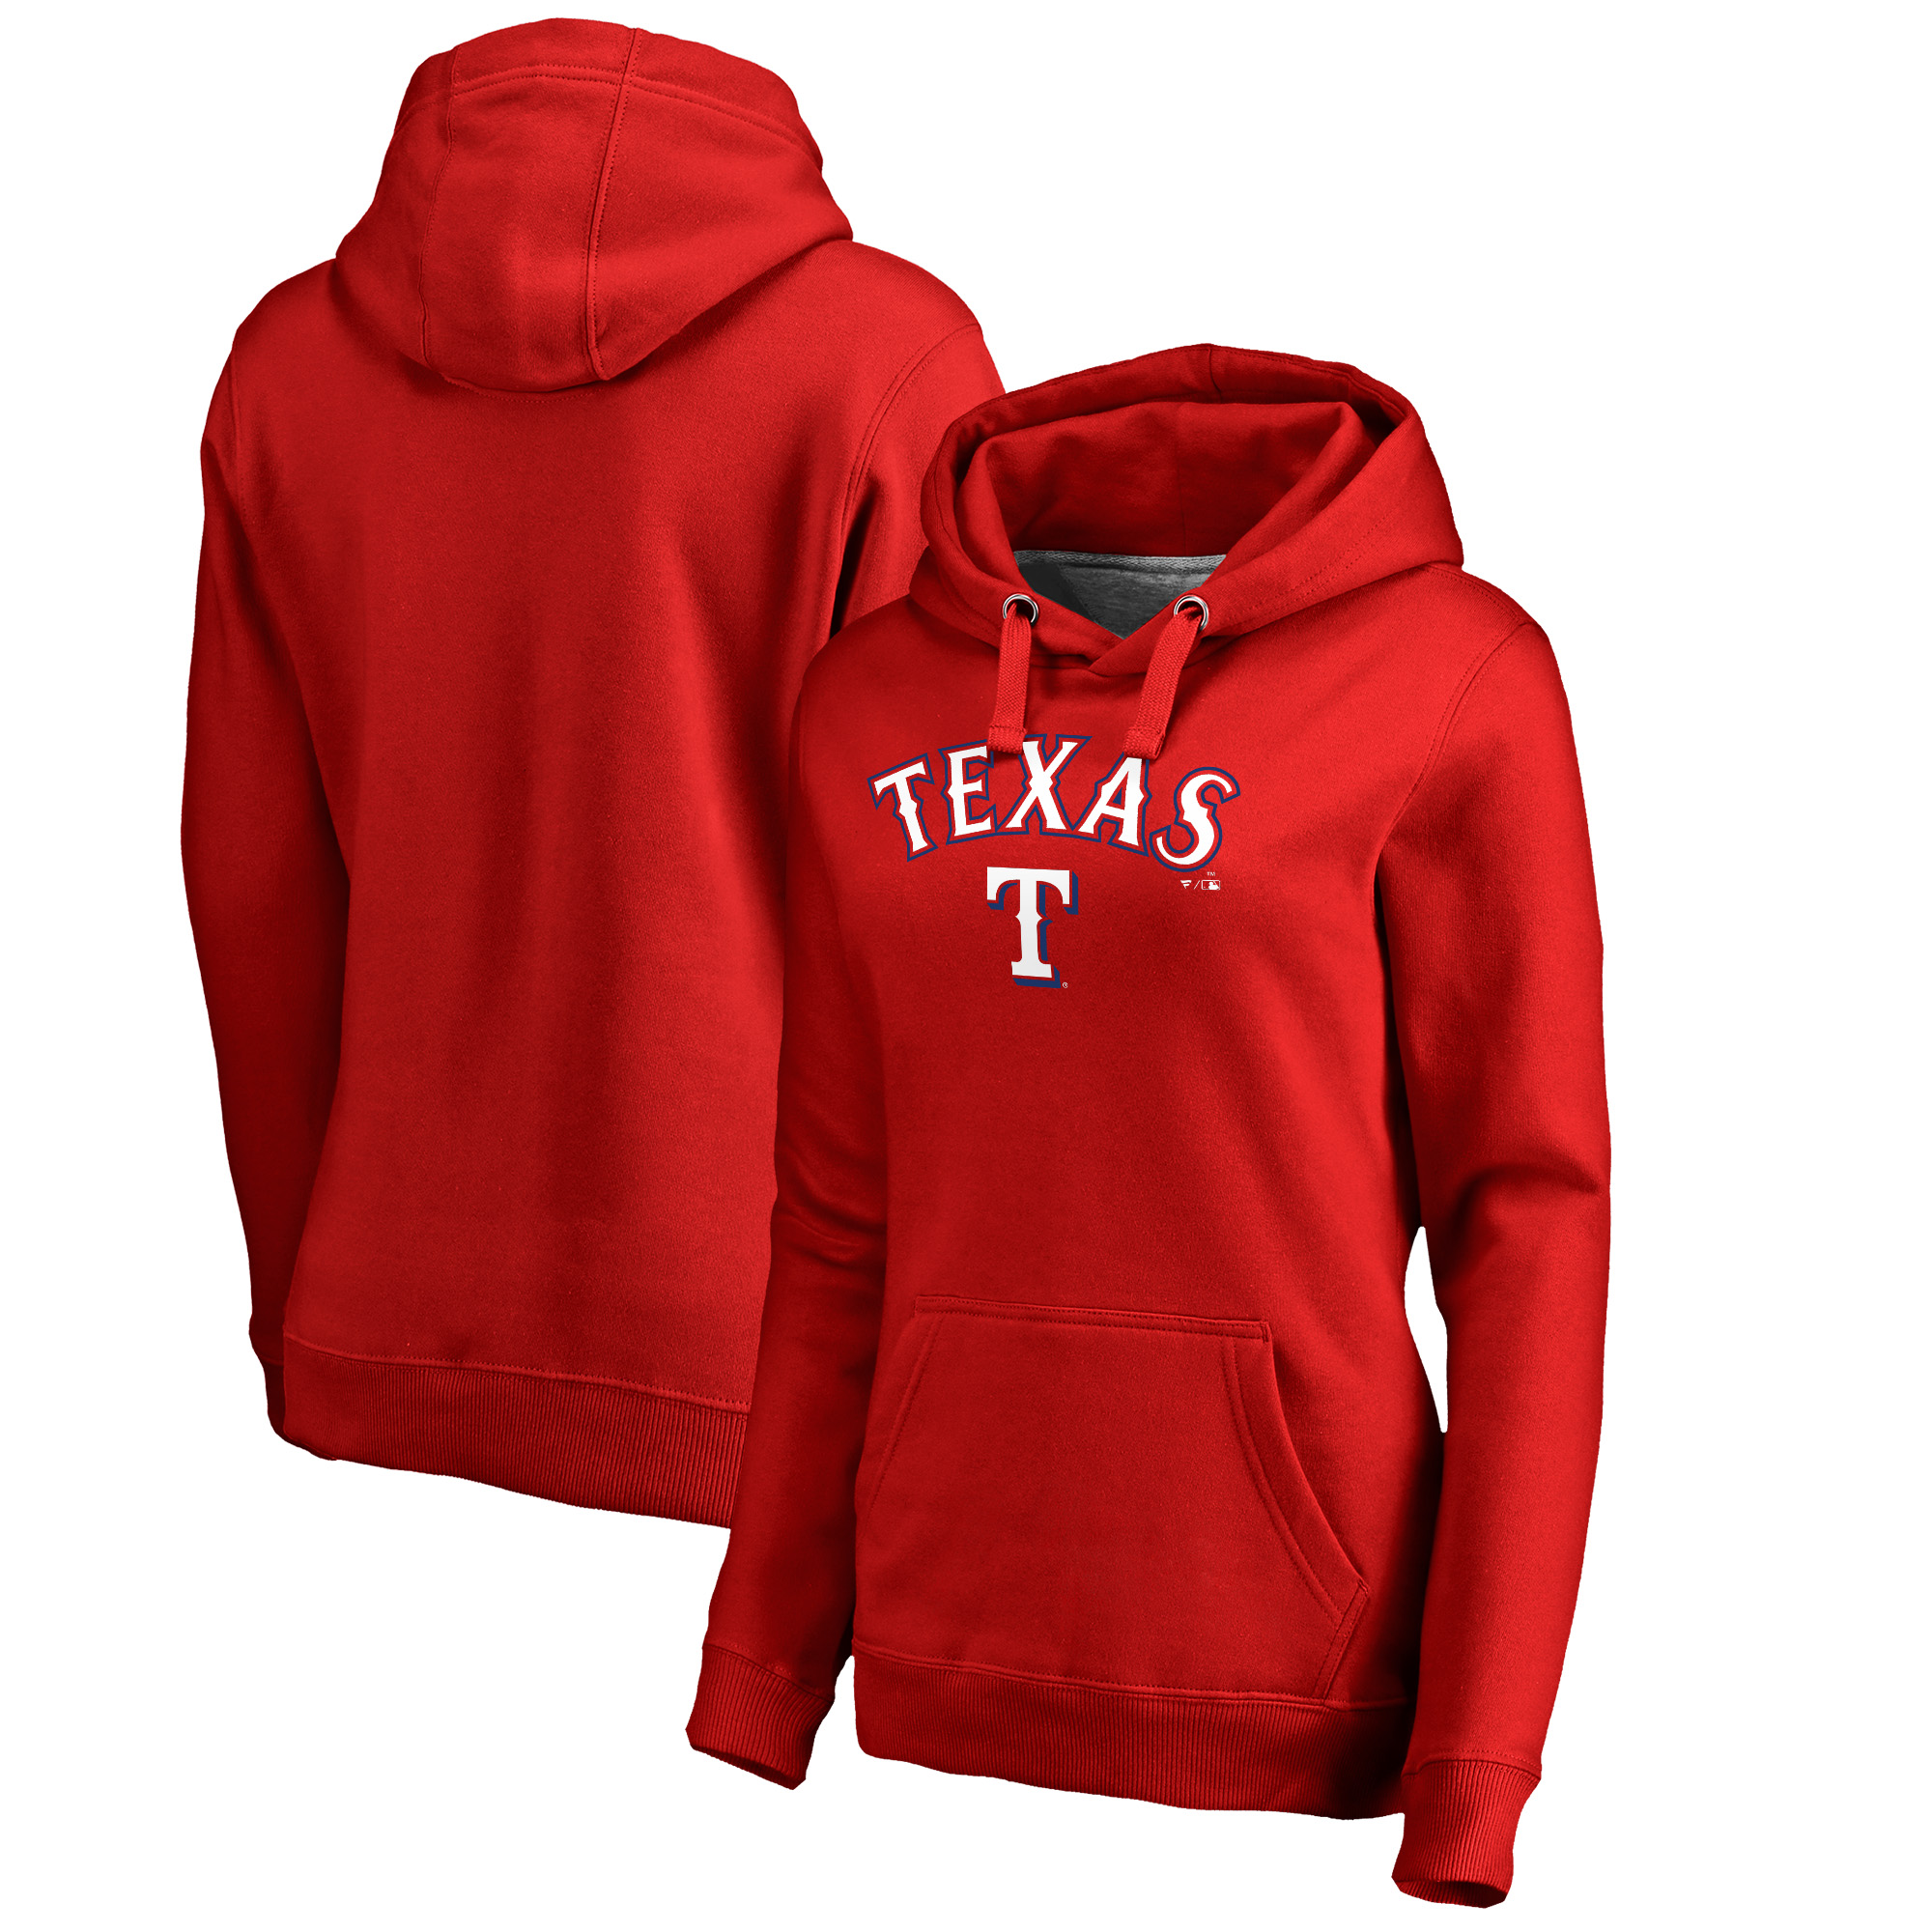 Texas Rangers Fanatics Branded Women's Plus Size Team Lockup Pullover Hoodie - Red